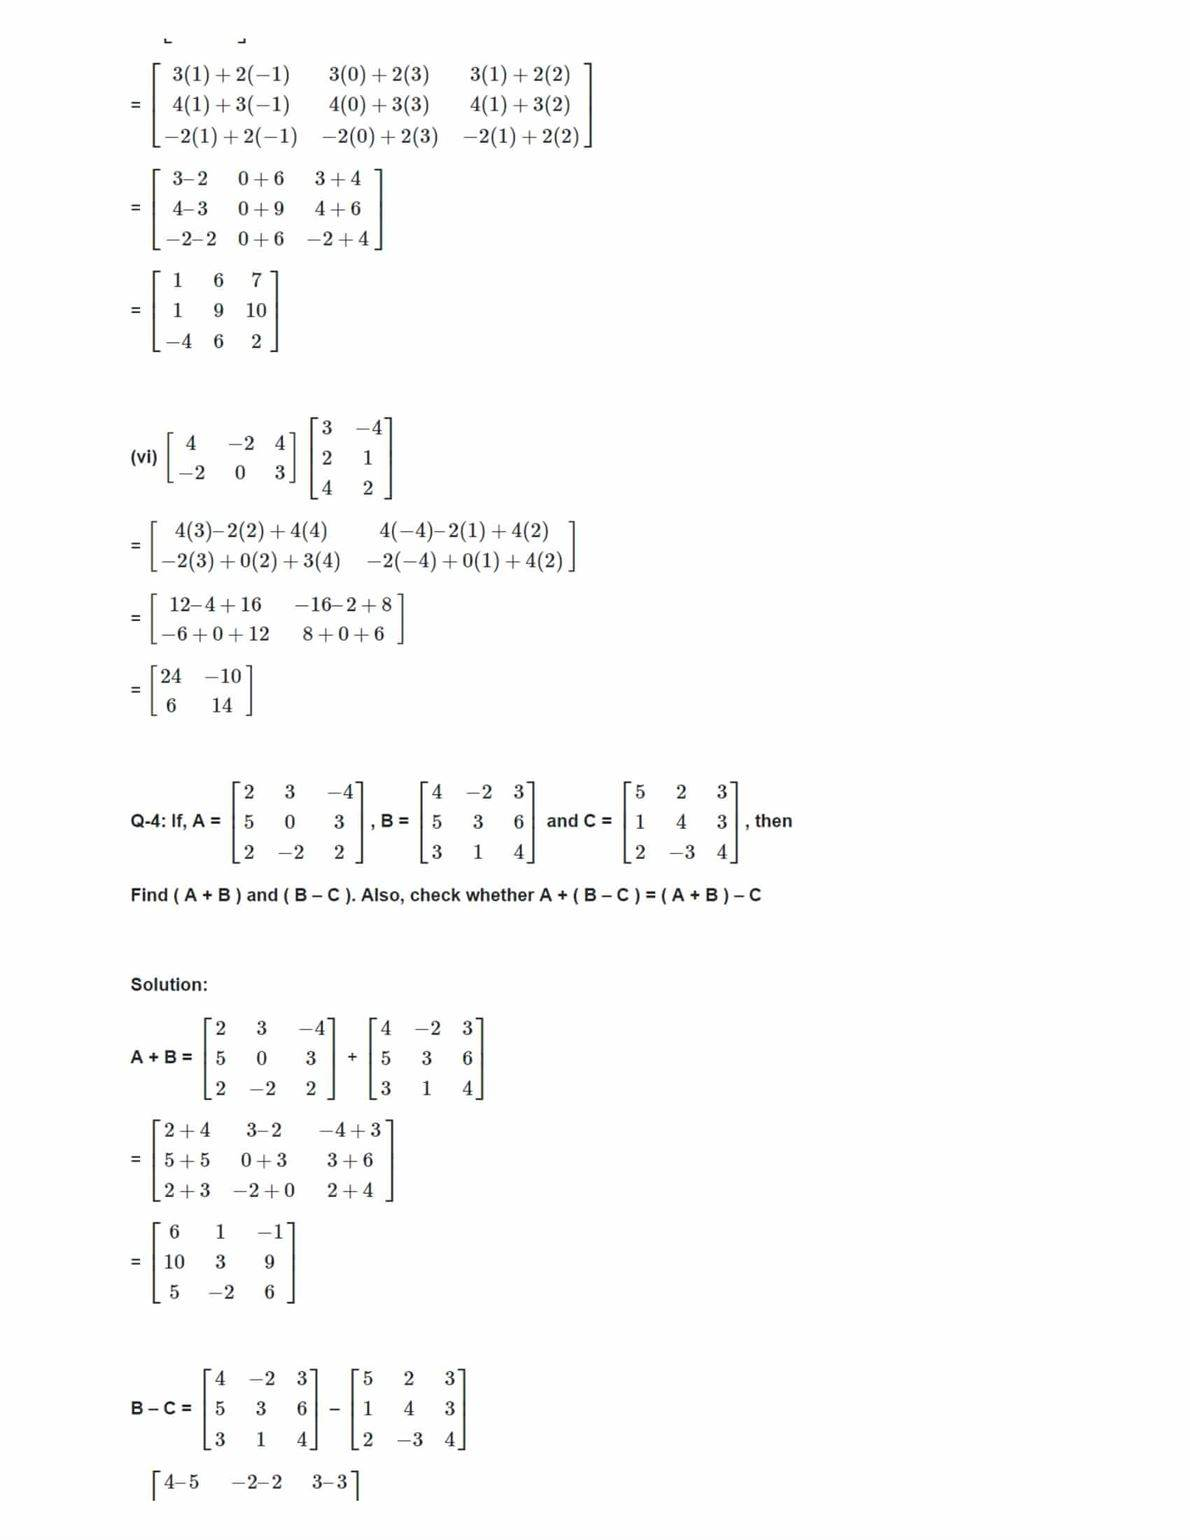 Ncert Solutions For Class 12 Maths Chapter 3 Ex 3.2